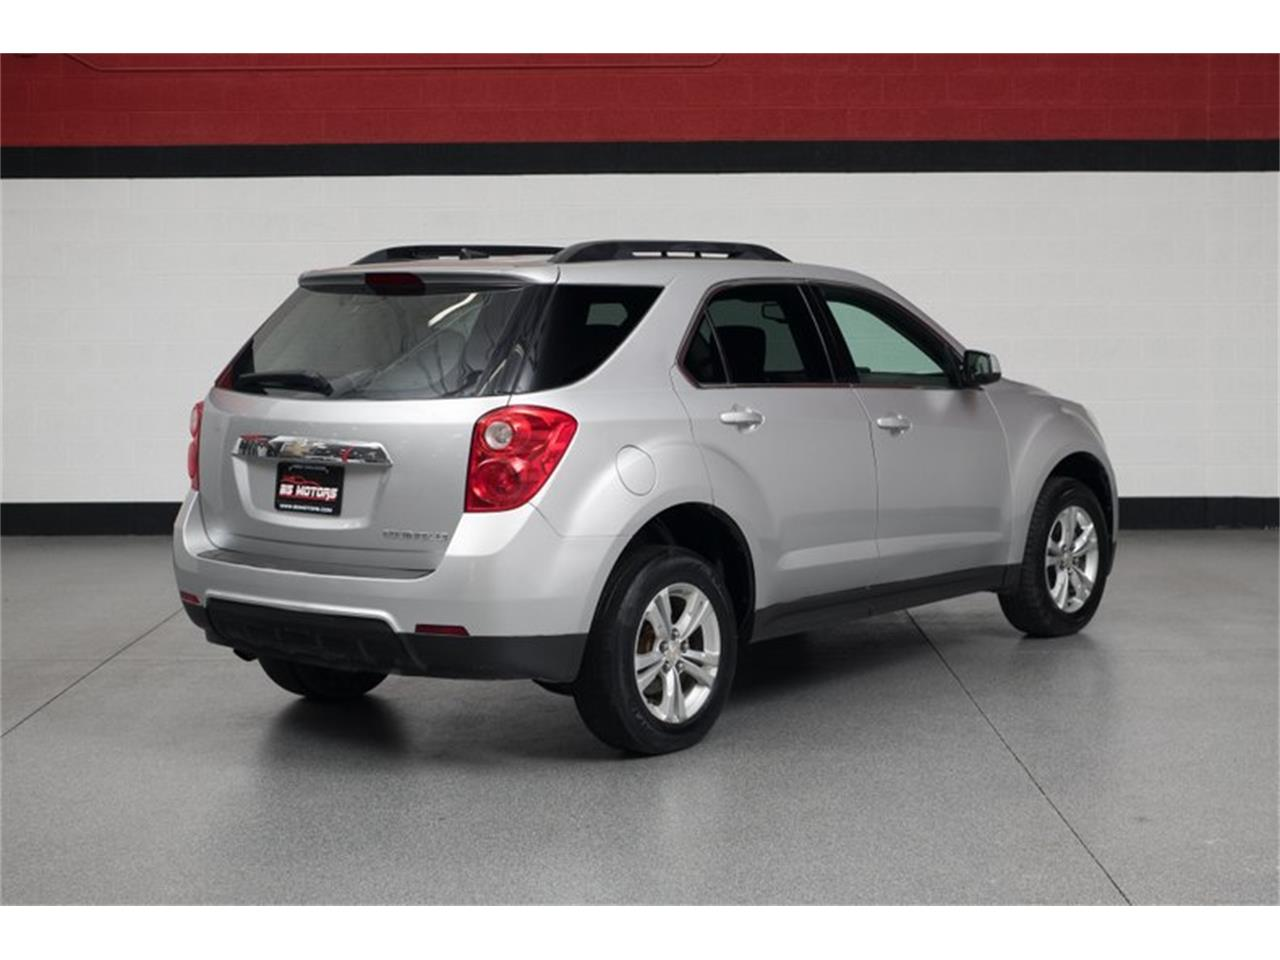 2010 Chevrolet Equinox (CC-1217874) for sale in Gilbert, Arizona